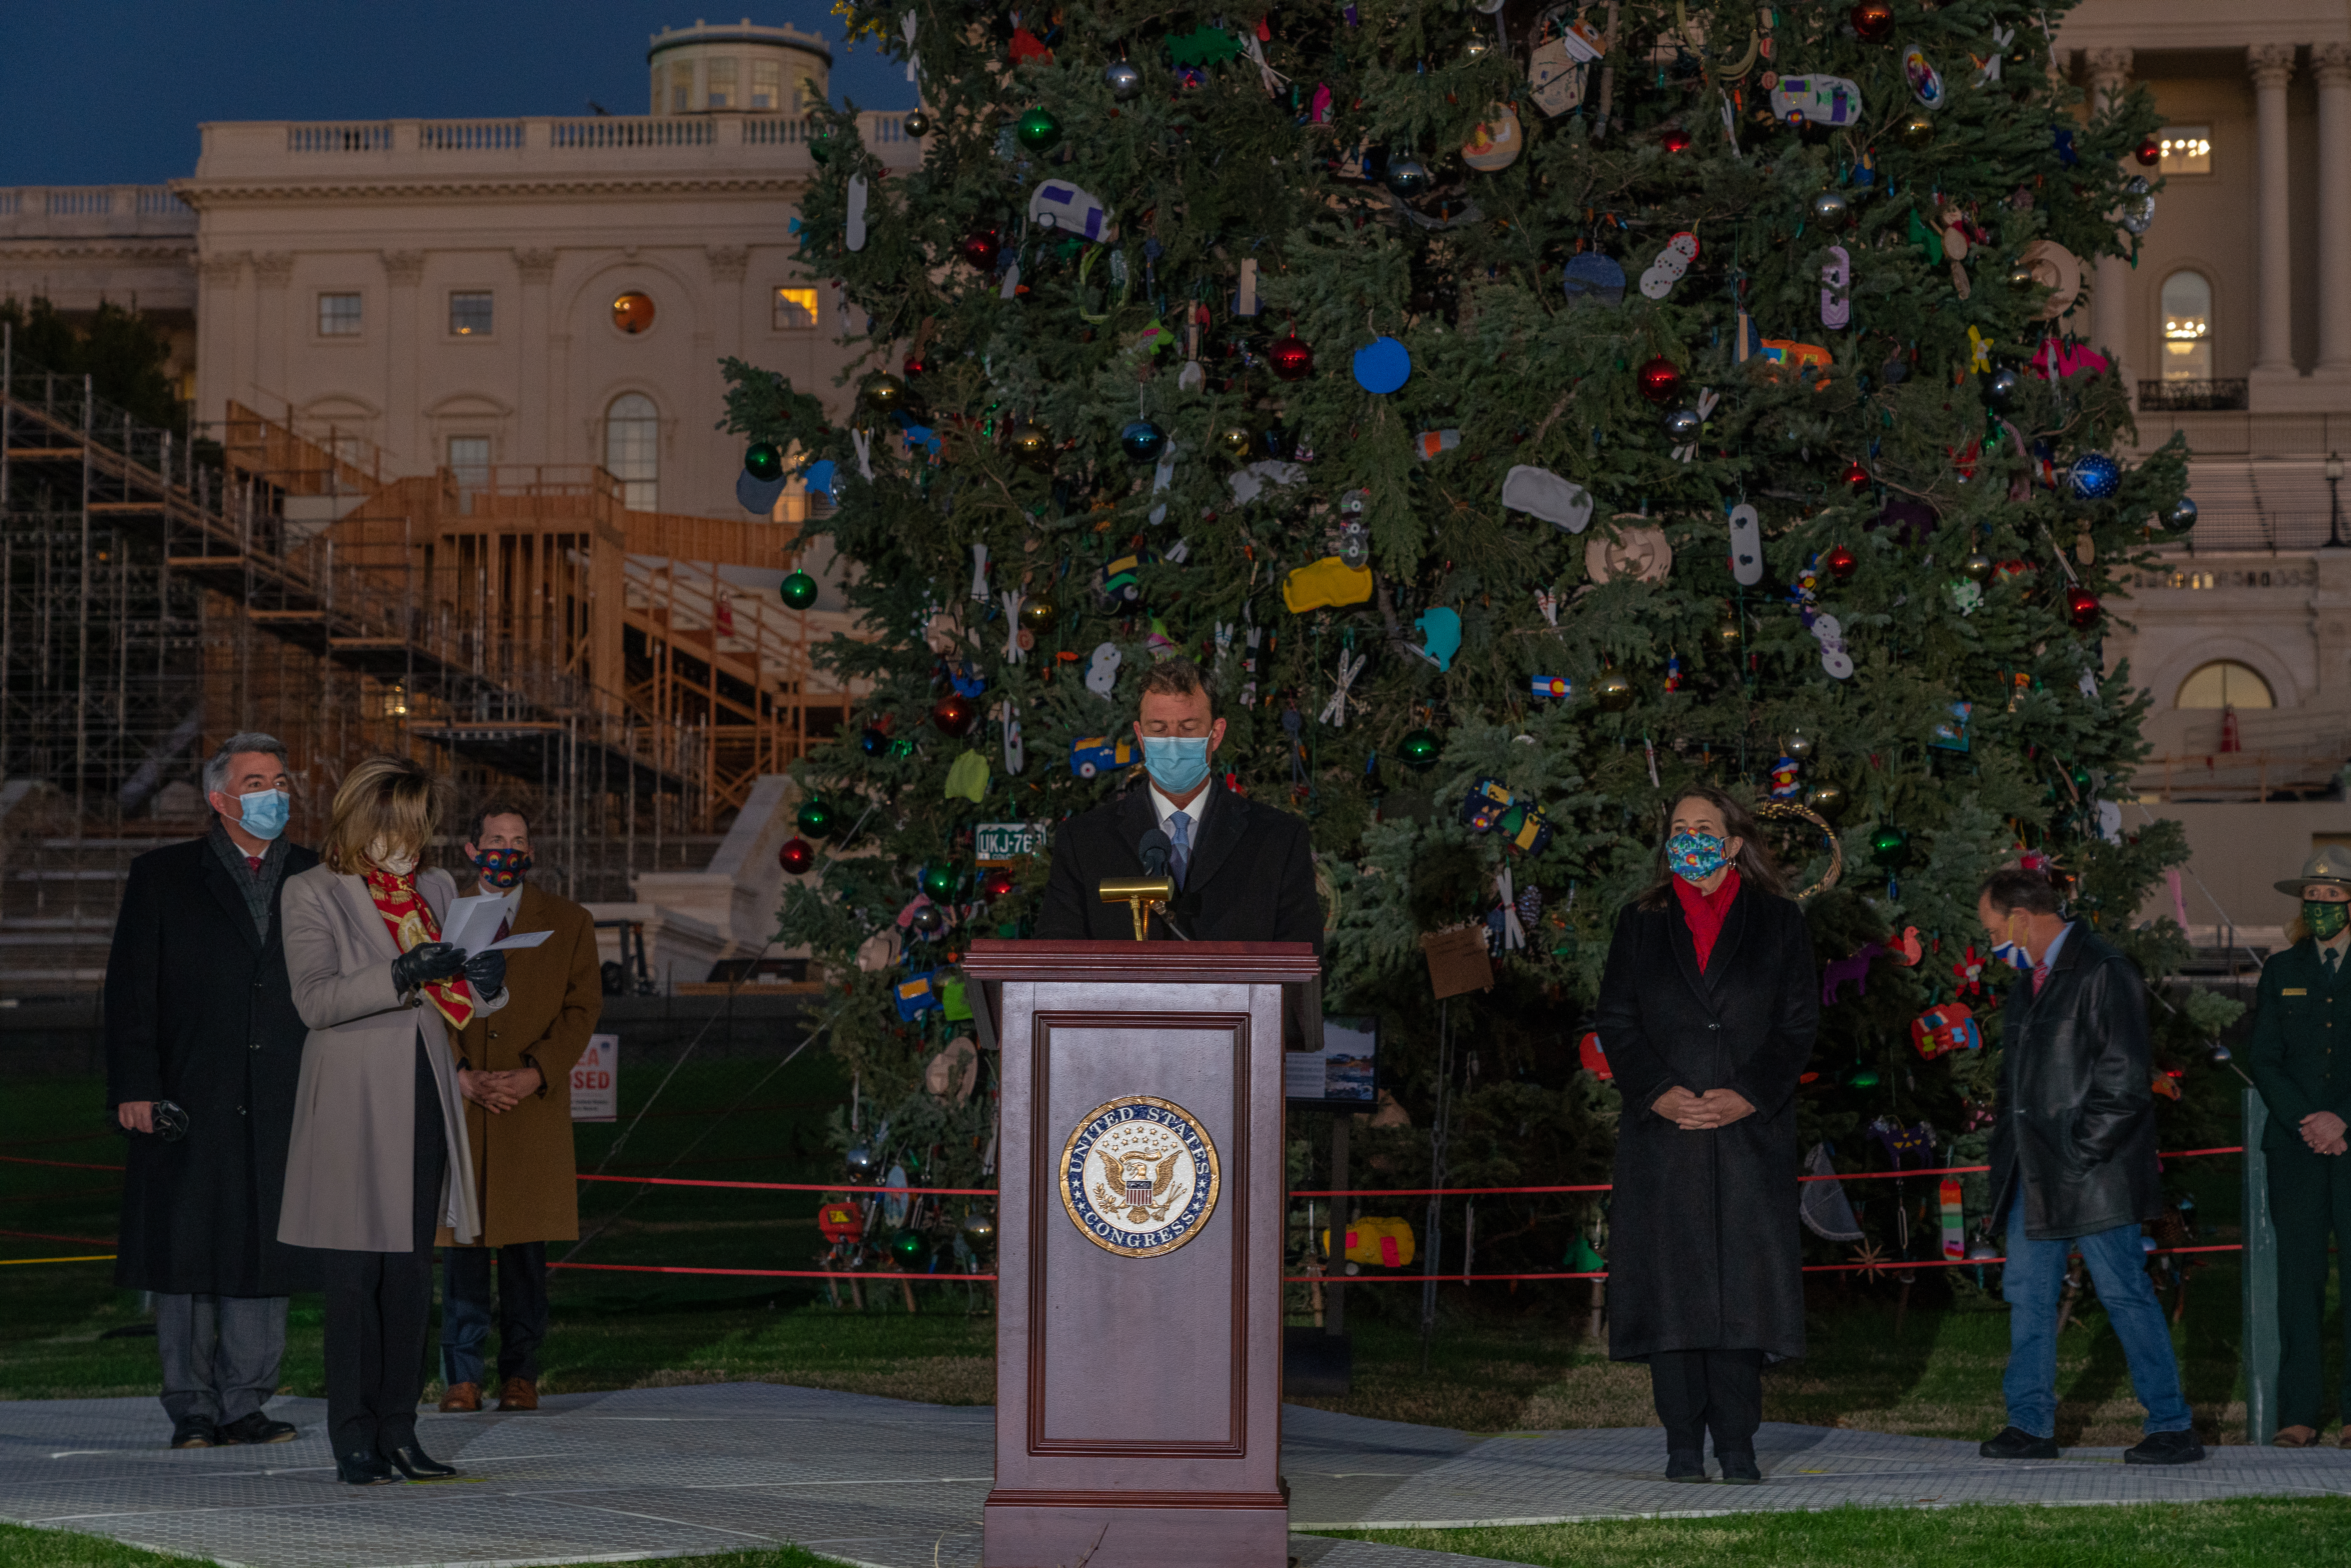 Capitol Christmas Tree Lighting Ceremony 2021 File 2020 Capitol Christmas Tree Lighting Ceremony 50676370616 Jpg Wikimedia Commons